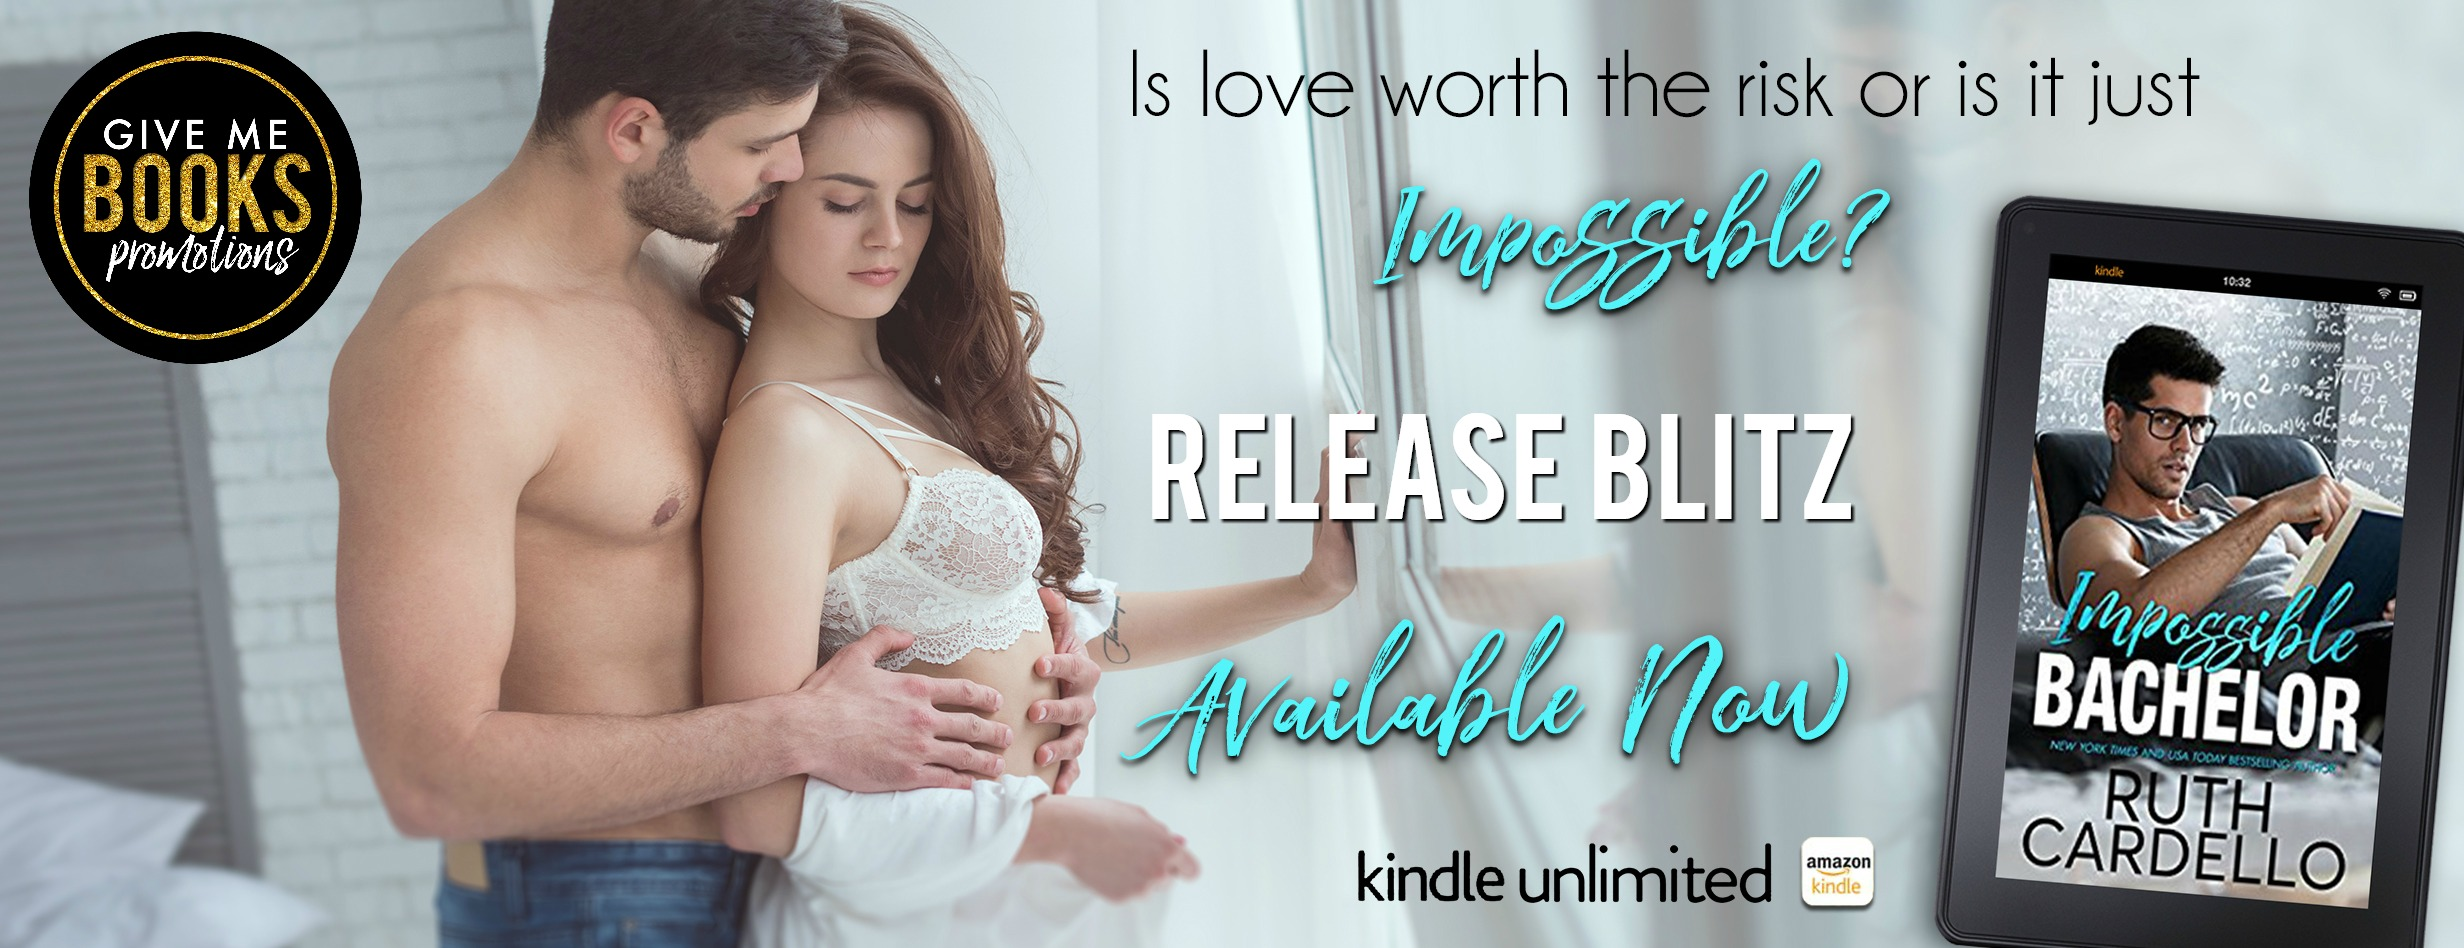 Release Blitz: Impossible Bachelor by Ruth Cardello